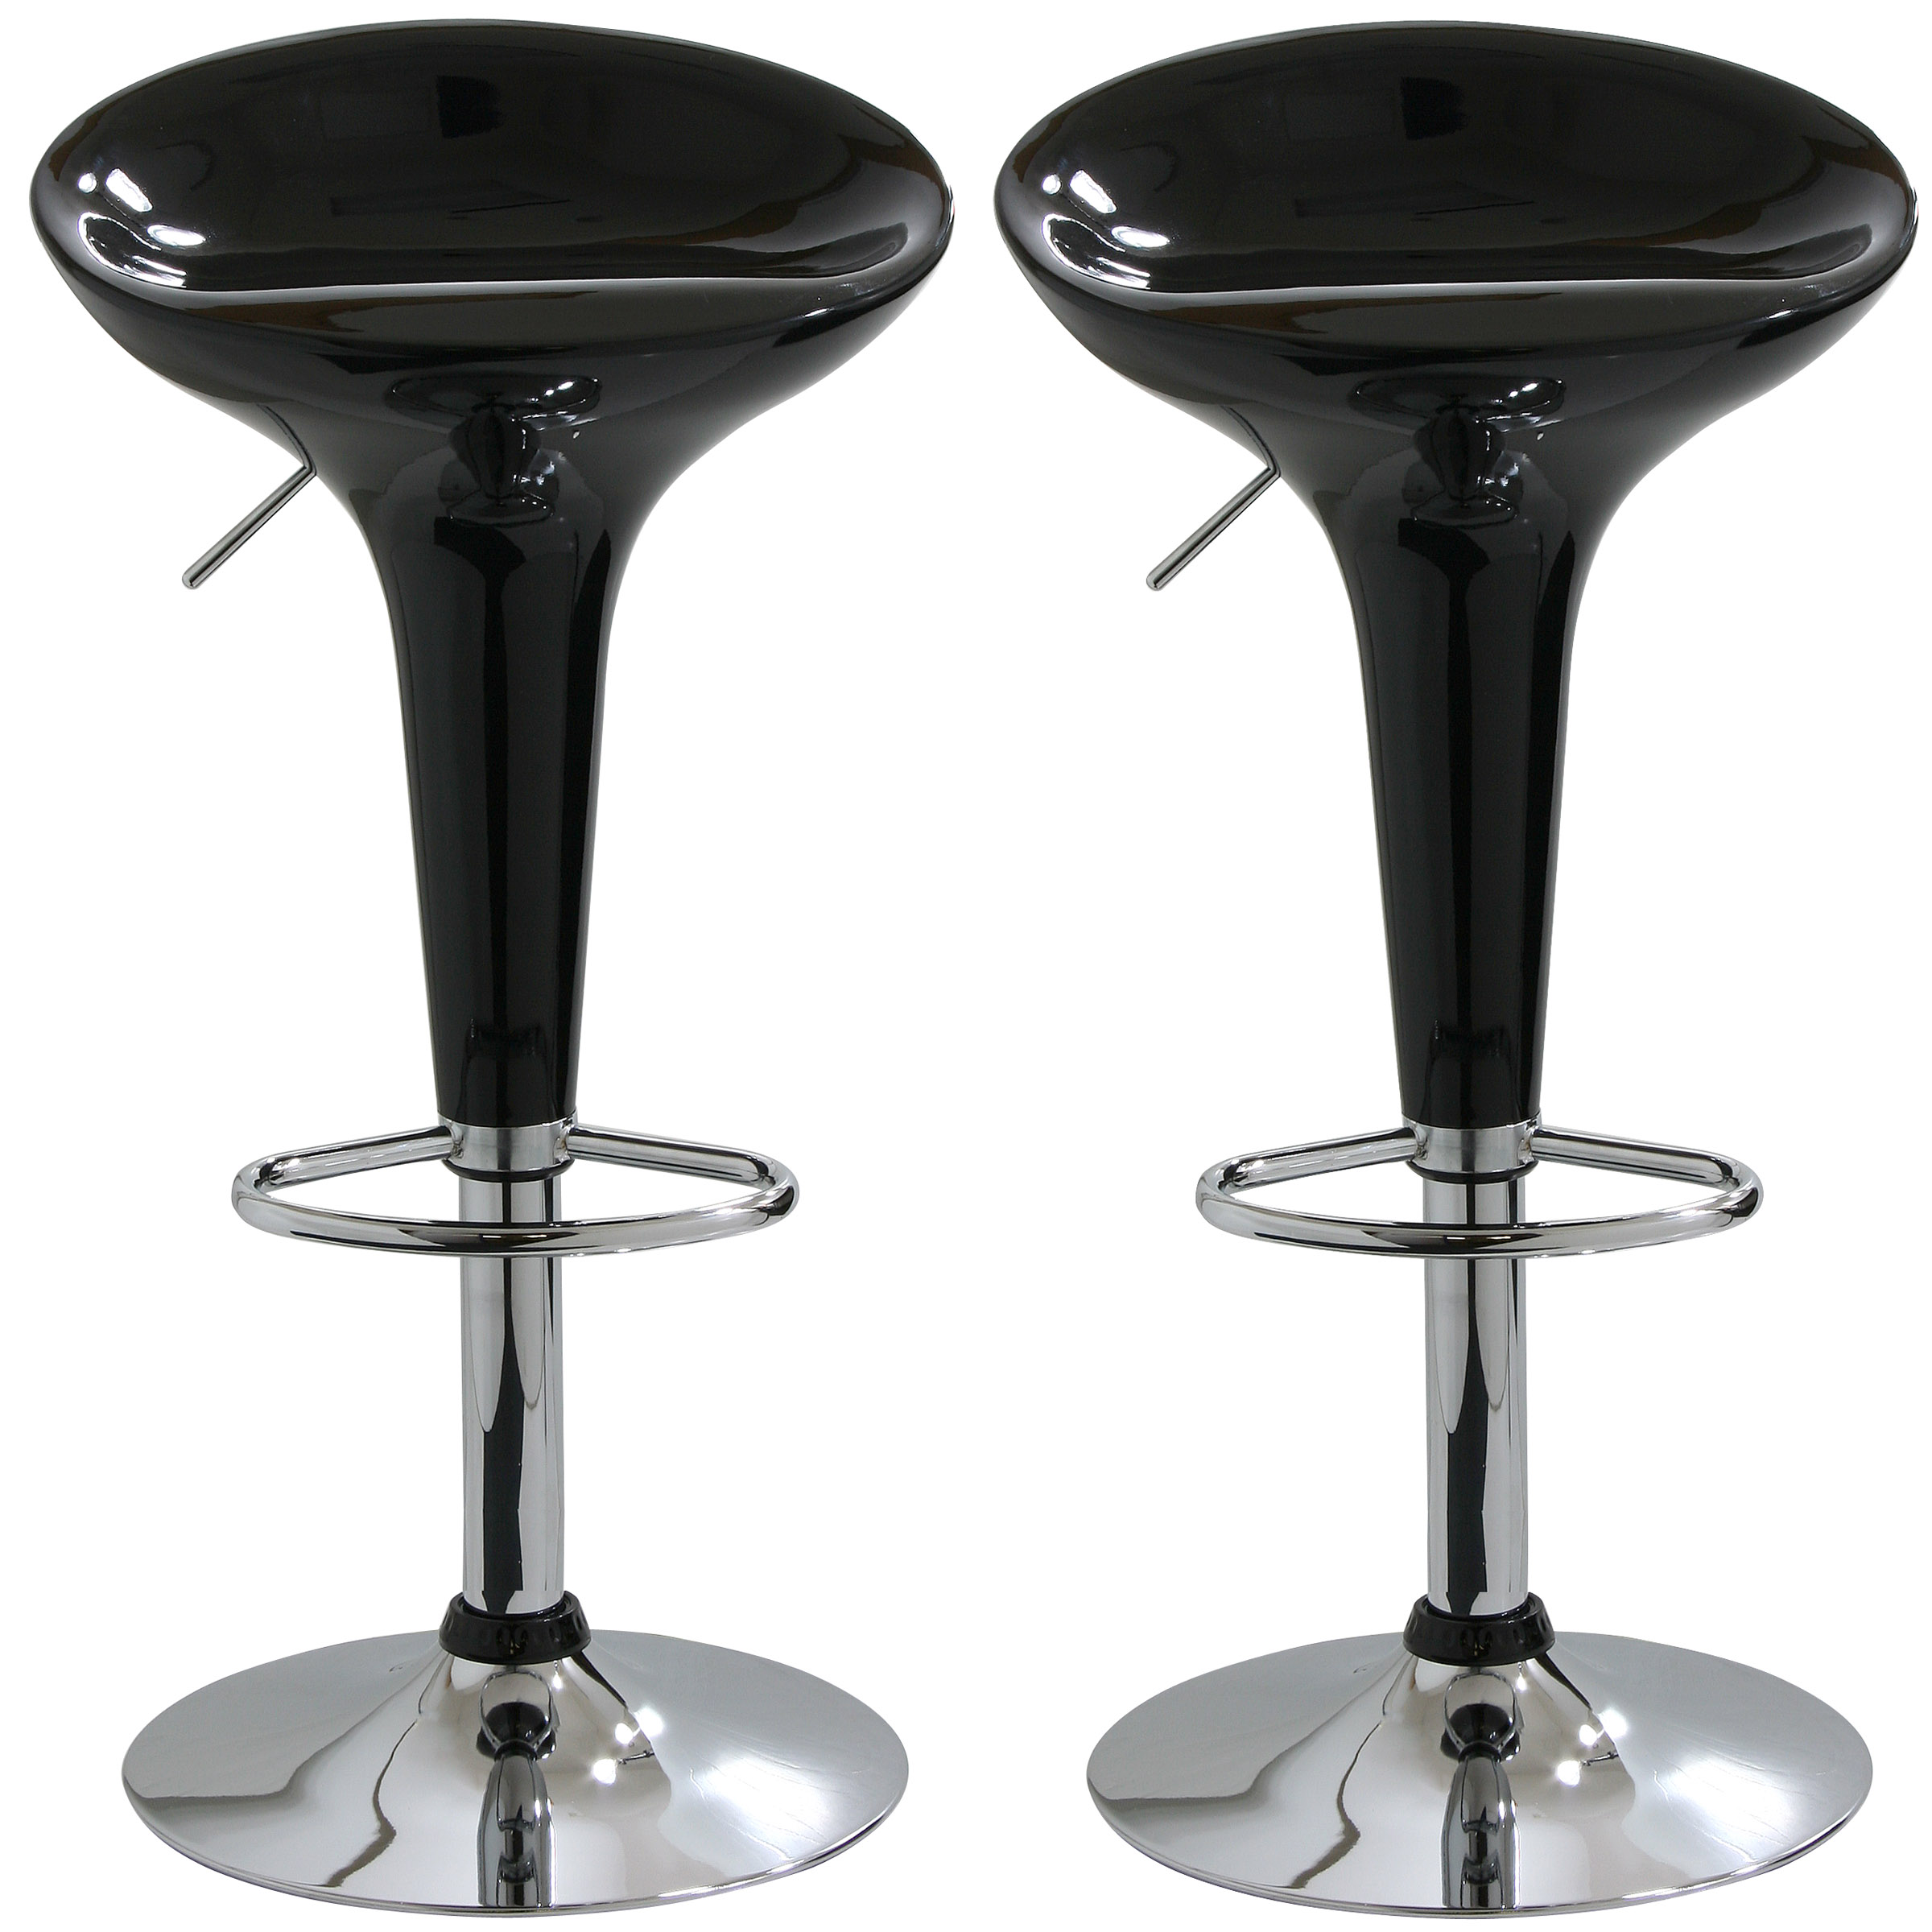 Amerihome Modern Sleek Black Bar Stool 2 Piece Walmart Com